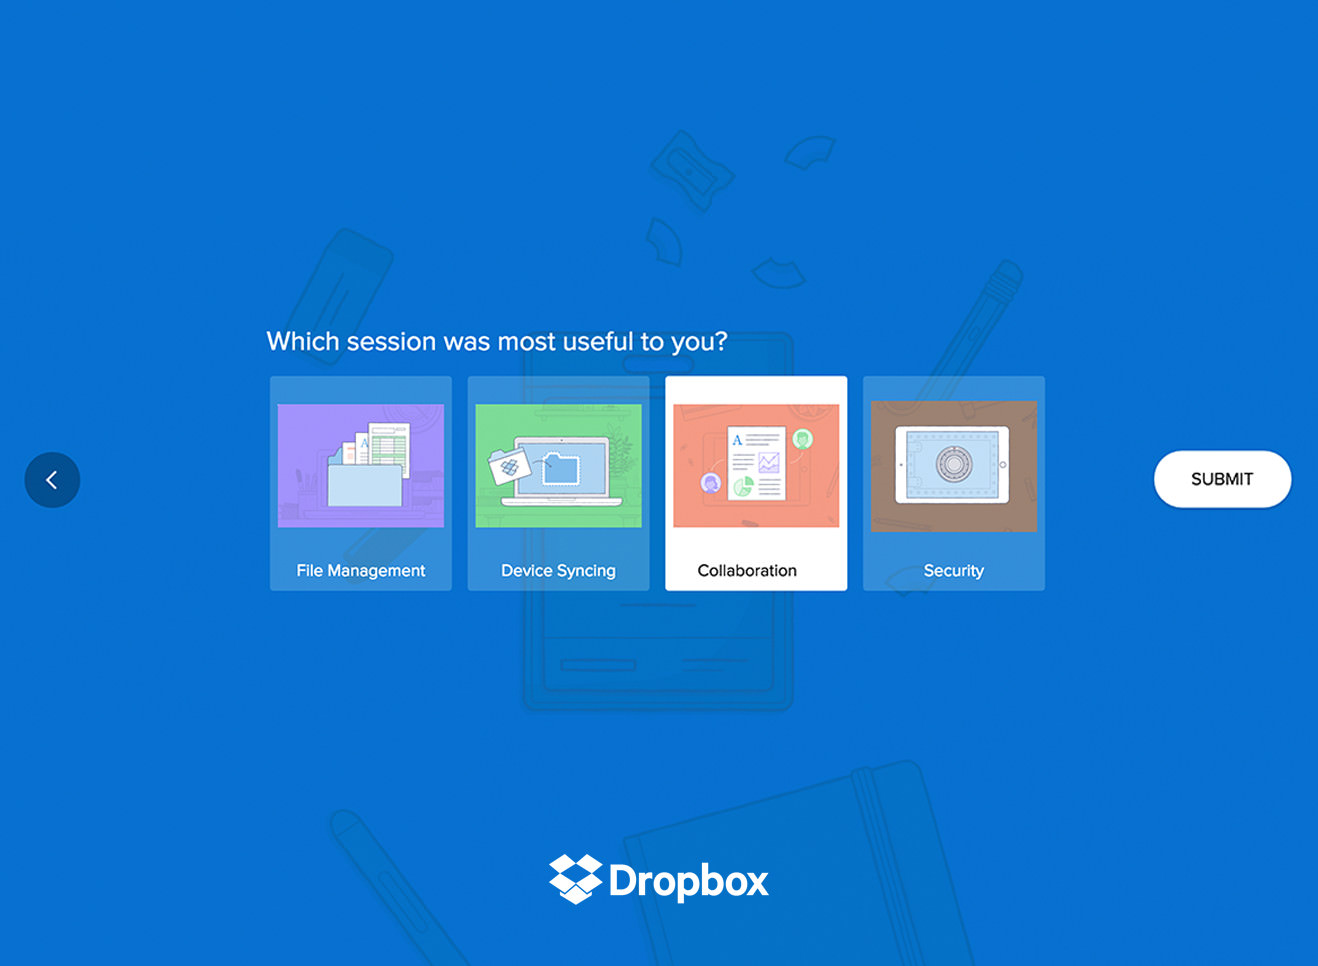 GetFeedback - Dropbox Survey